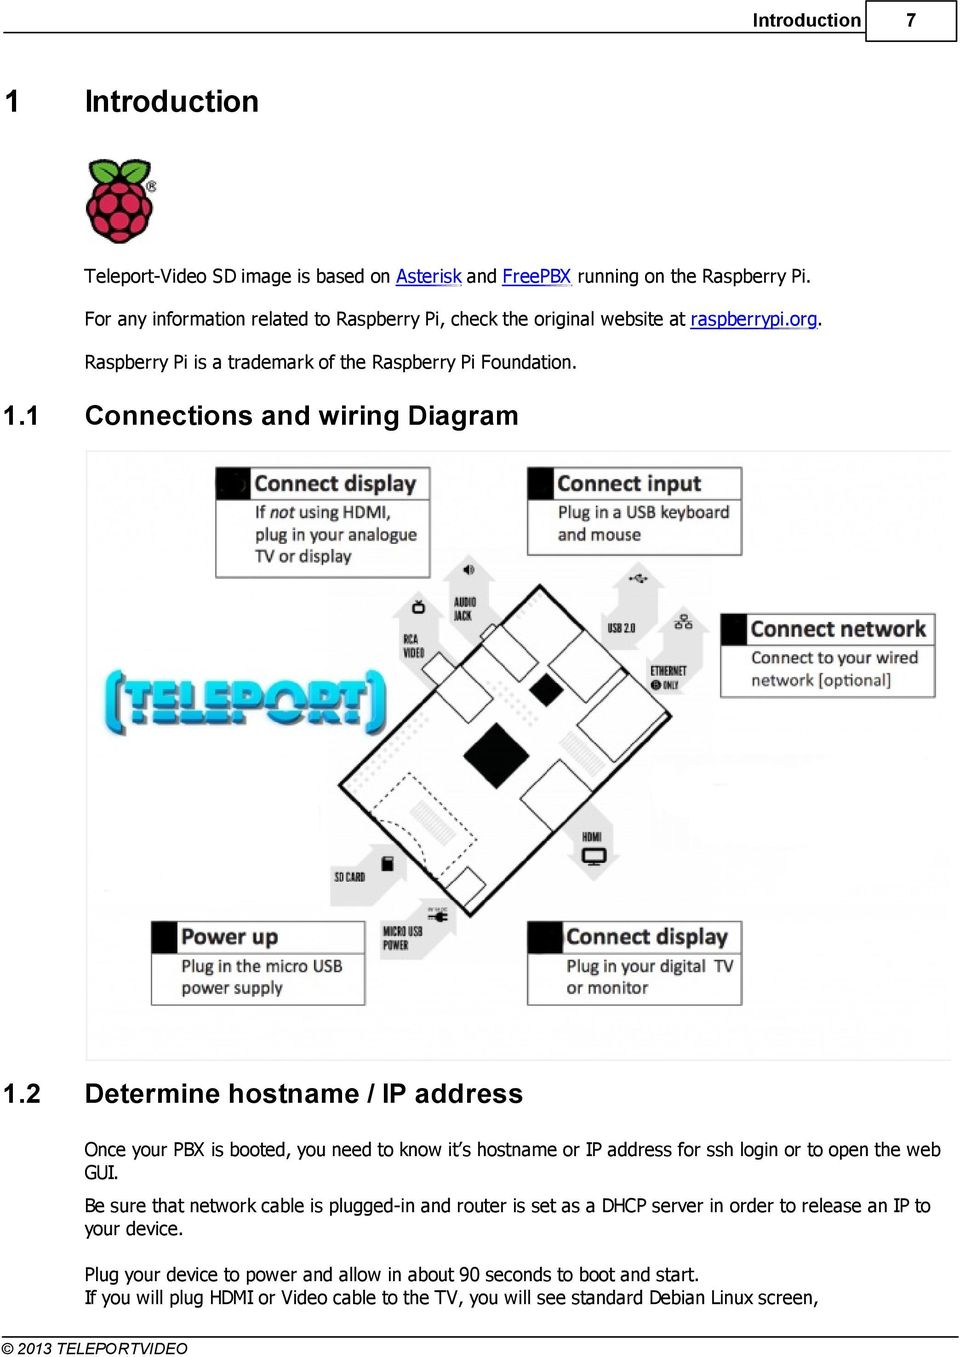 medium resolution of 1 connections and wiring diagram 1 2 determine hostname ip address once your pbx is booted